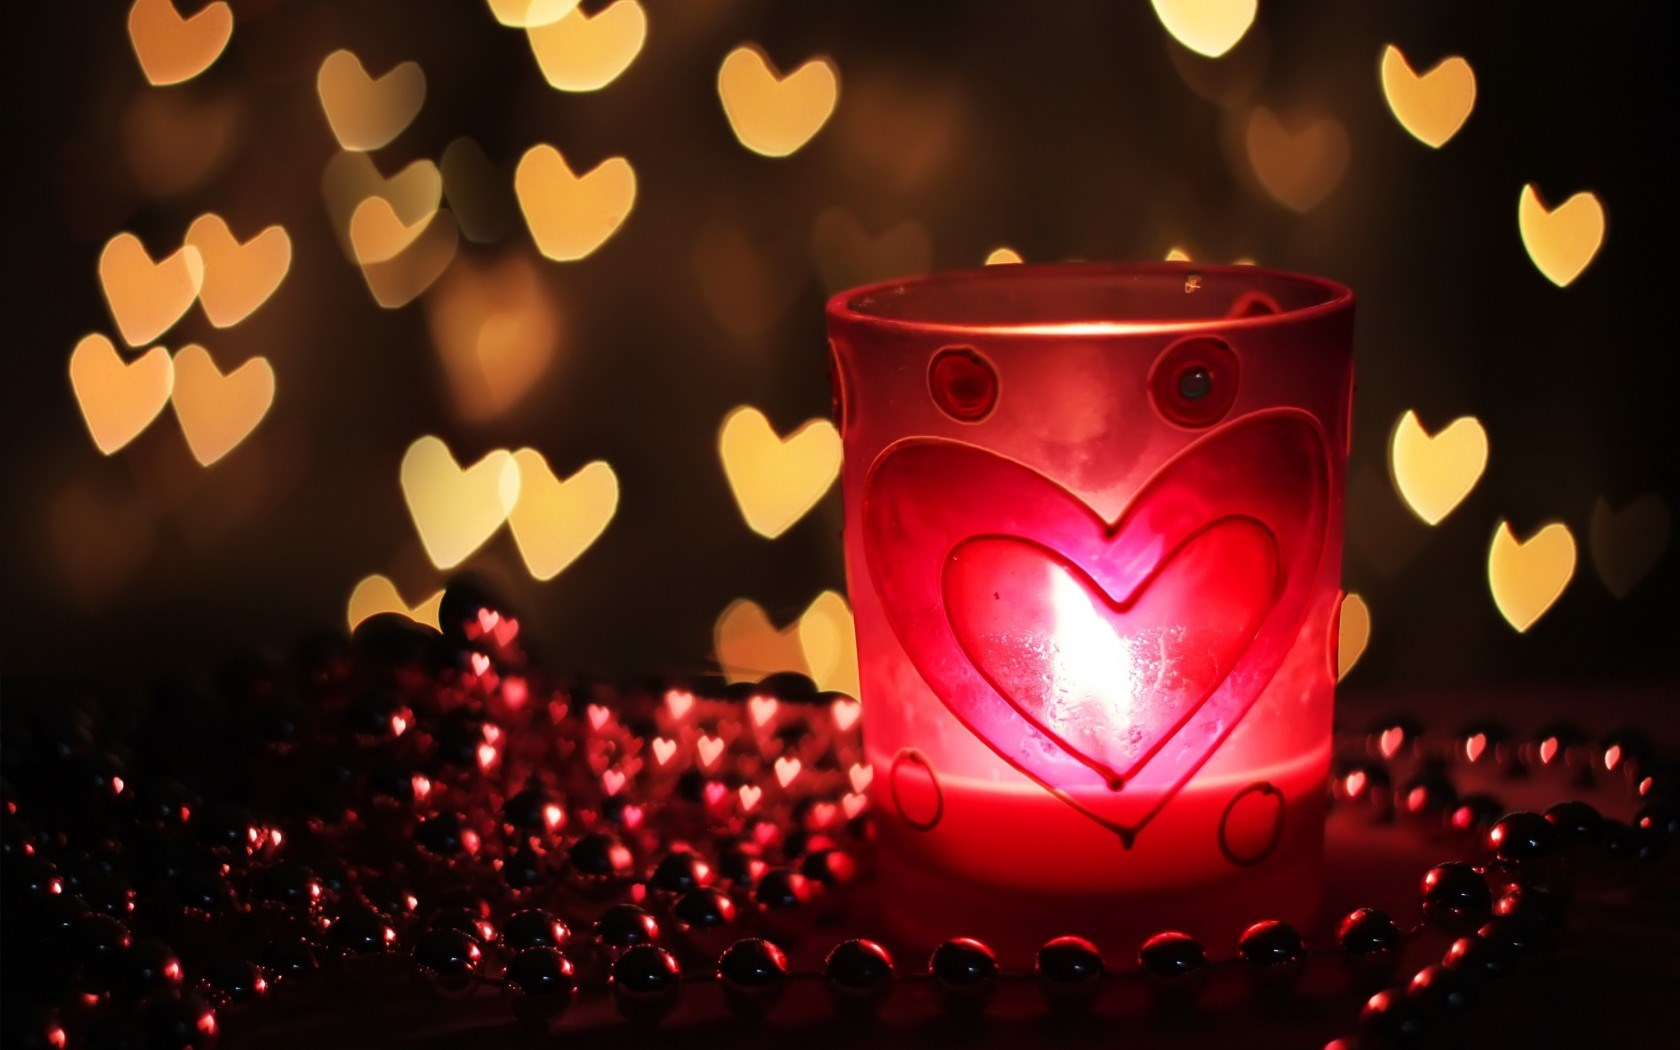 Mood Candle Fire Flame Hearts